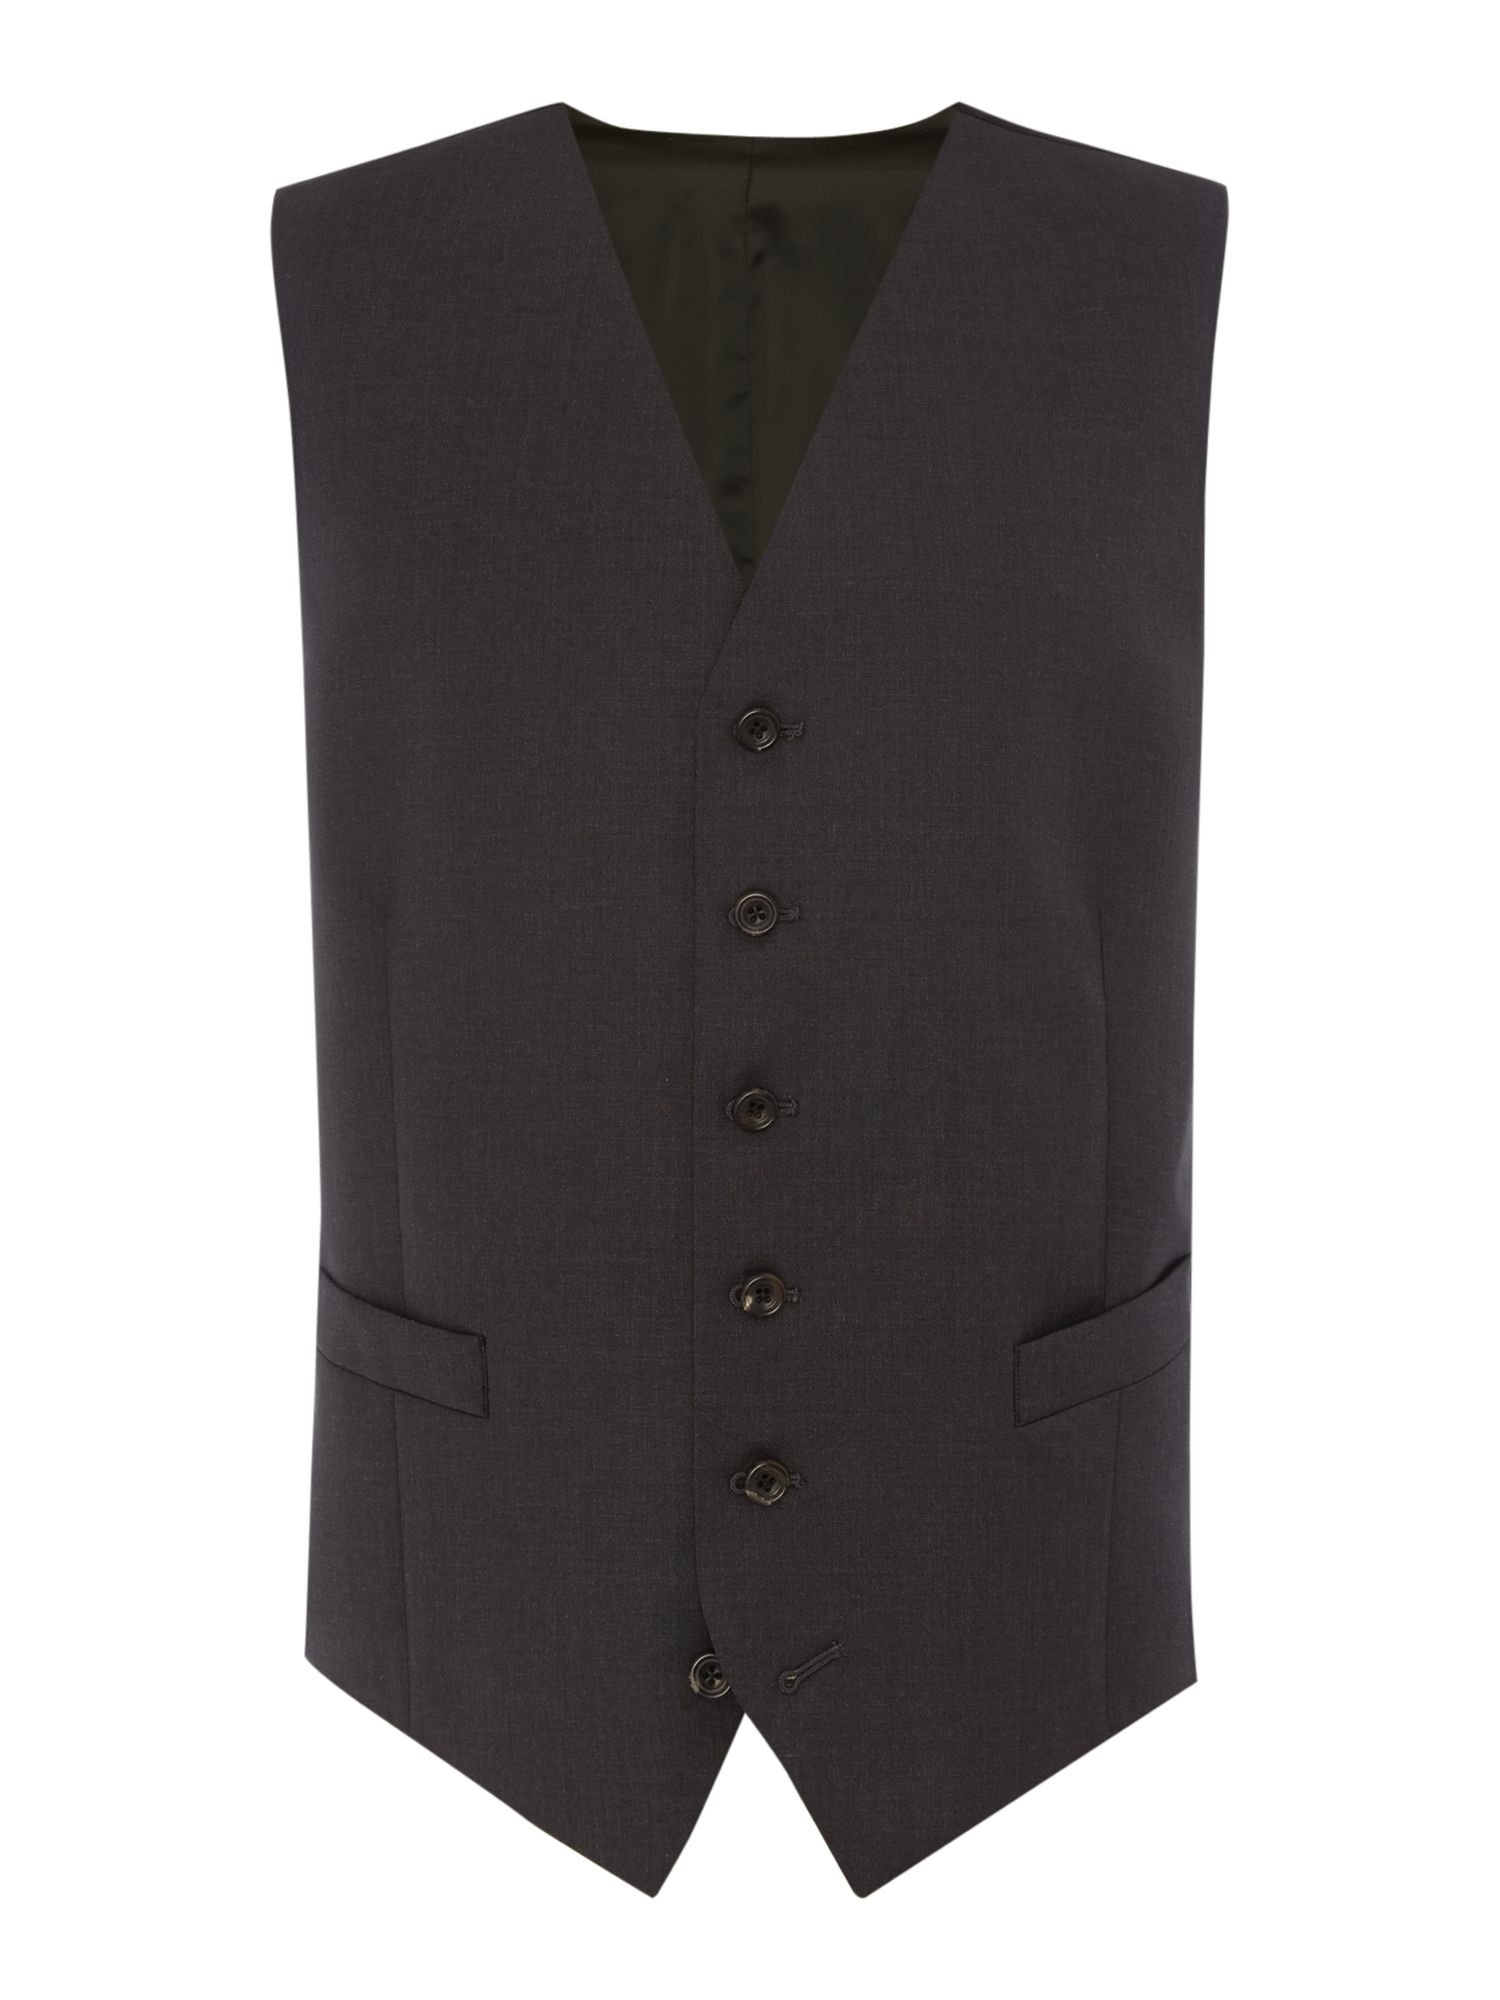 Photo of Mens chester barrie plain tailored fit waistcoat- charcoal